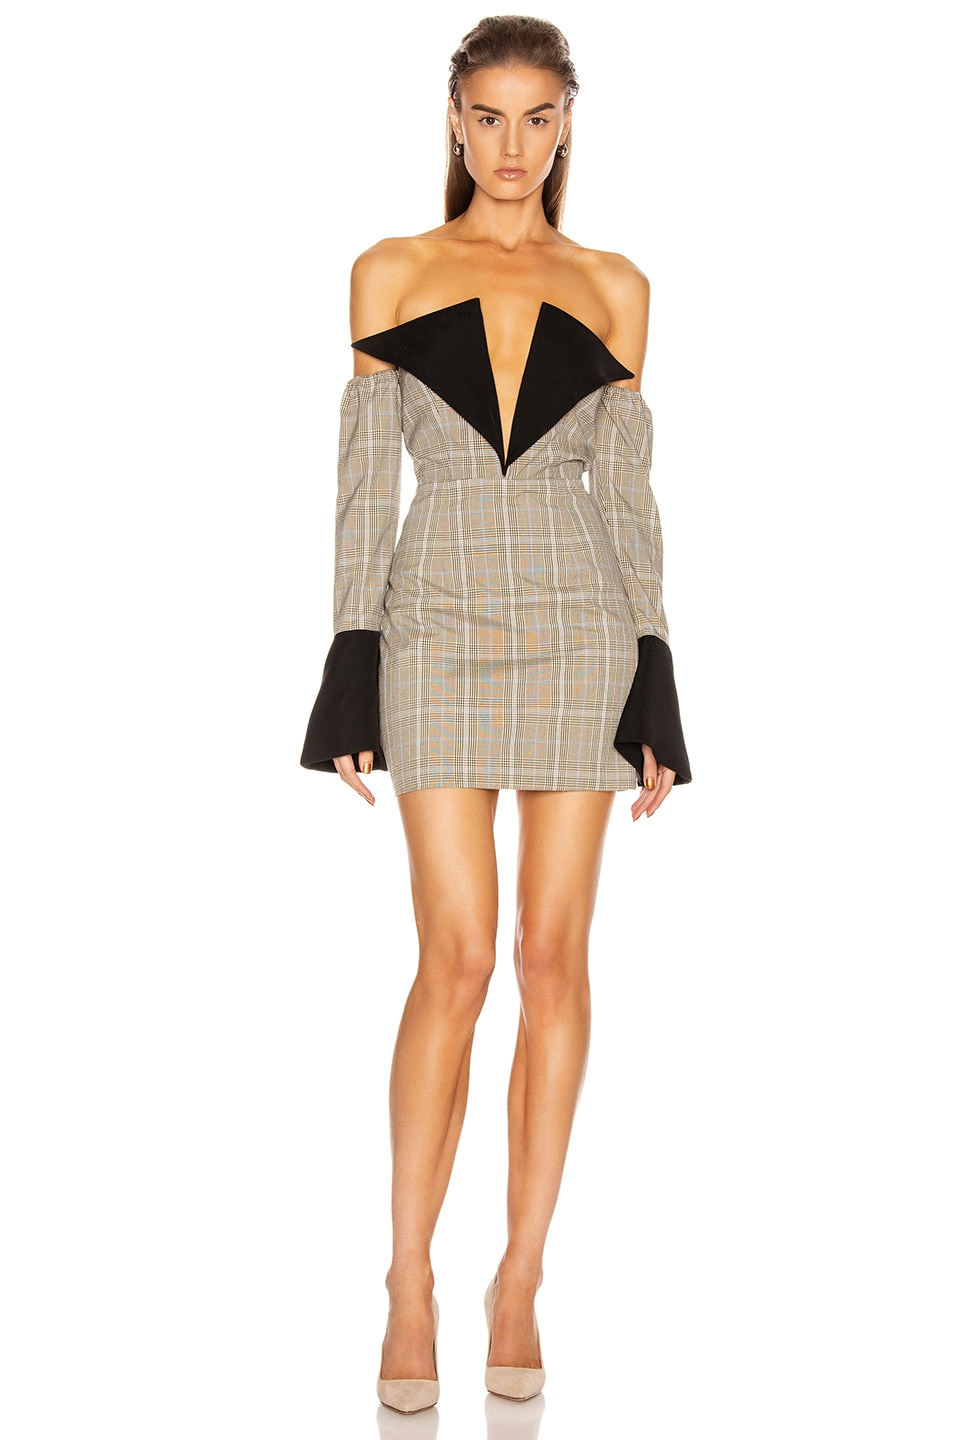 Image 1 of Atoir Sharp Edges Dress in Tan, Blue Check & Black